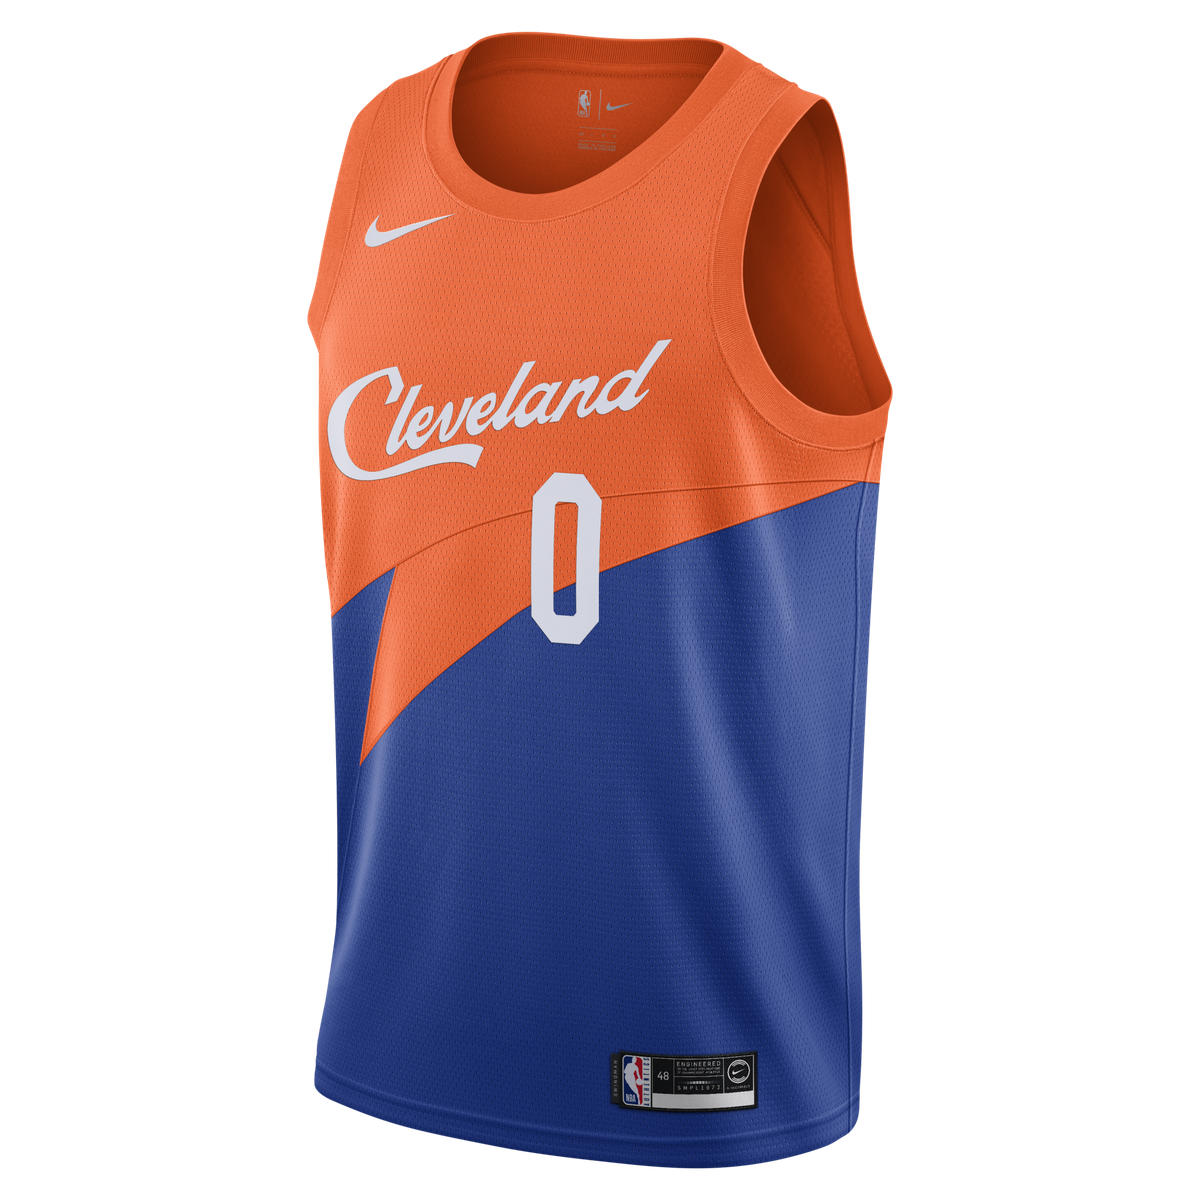 418bfe10c6d NBA City Edition: The jerseys, T-shirts and merch you can buy online ...